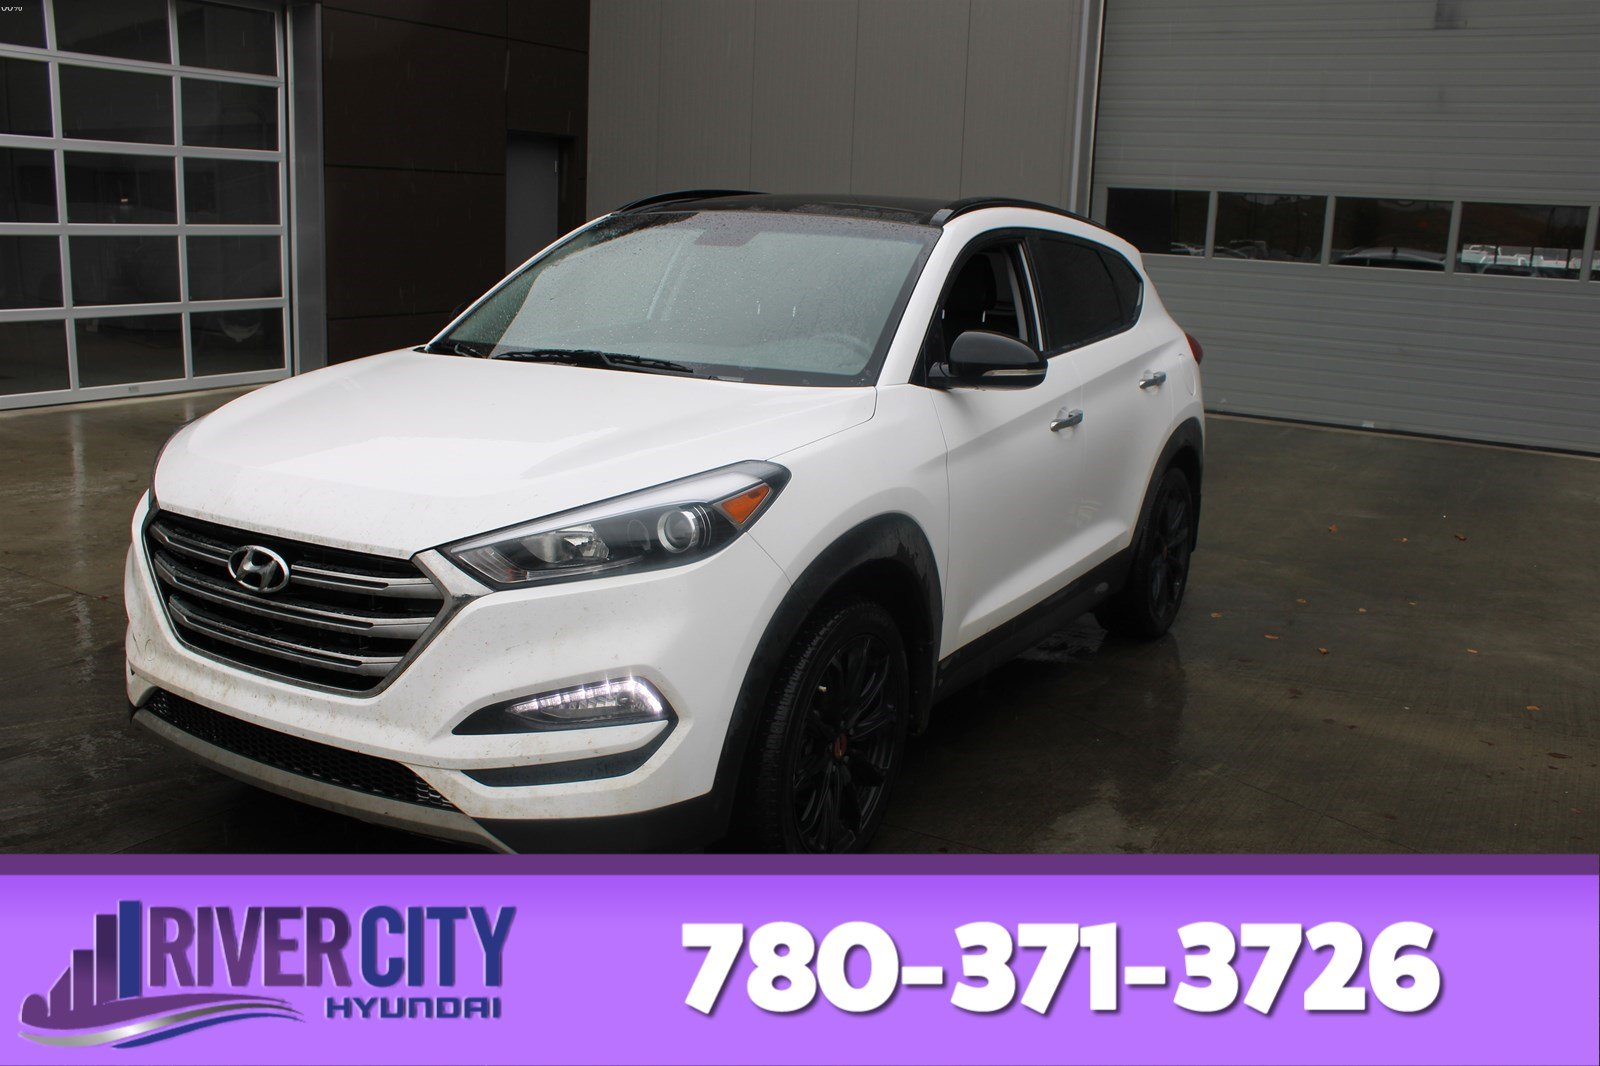 Certified Pre-Owned 2018 Hyundai Tucson AWD NOIR EDITION Heated Seats, Sunroof, Bluetooth, A/C,